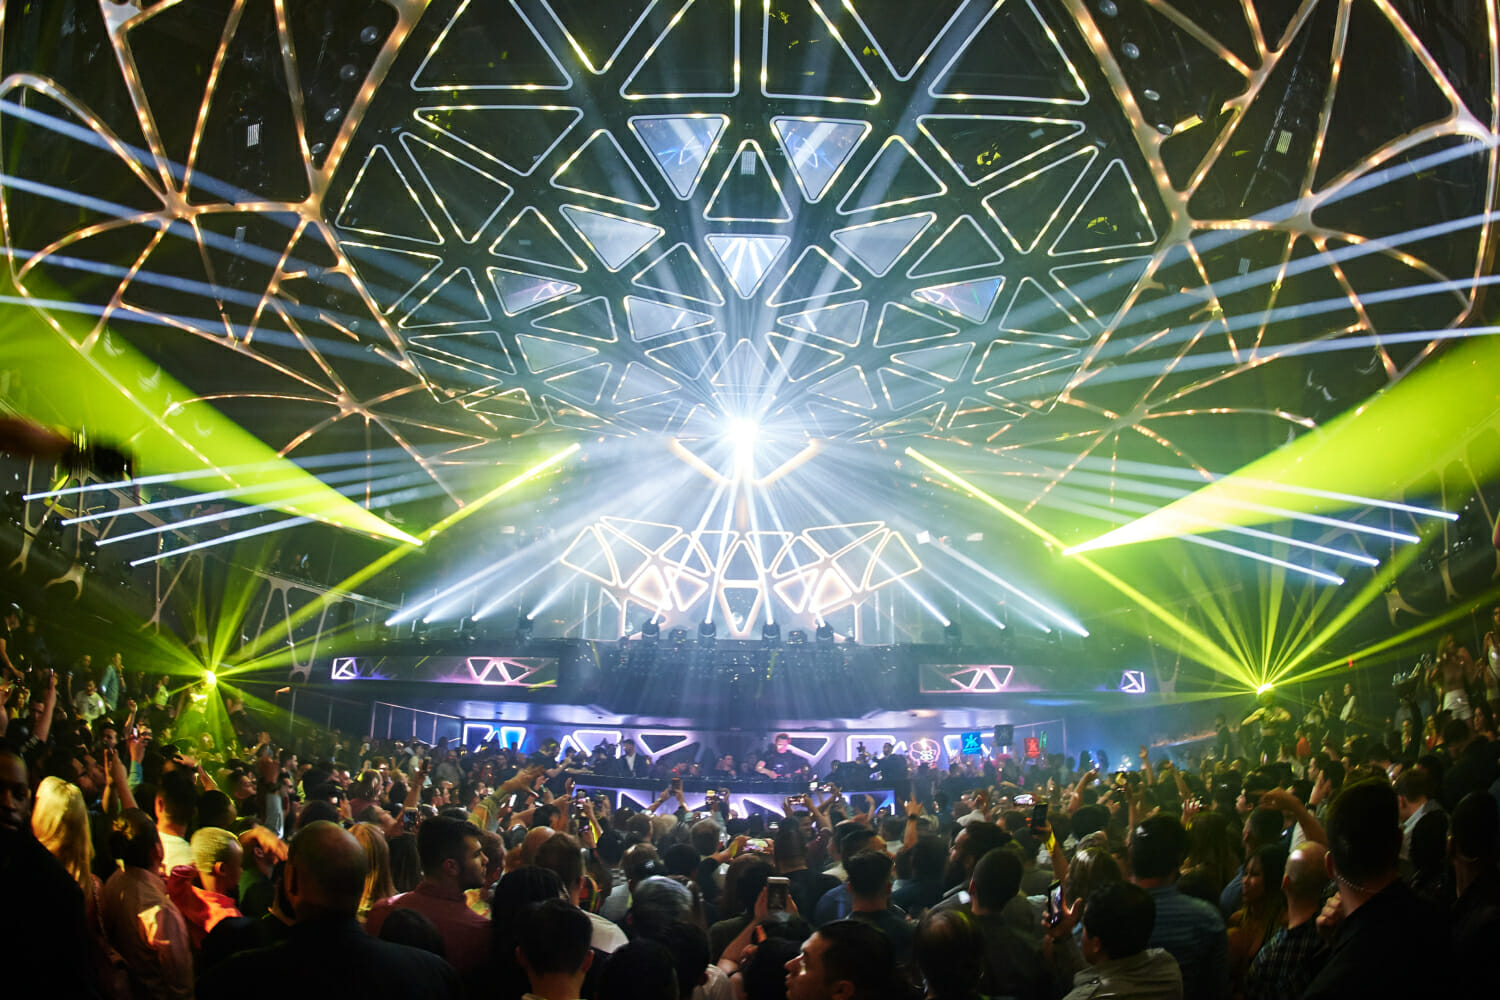 Industry insiders: Las Vegas nightclubs must adapt to survive COVID-19 economic falloutThe Hakkasan Grid The Largest Kinetic Light Installation In The United States Is Unveiled At Hakkasan Nightclub In Las Vegas On May 16 Photo Credit Power Imagery LLC